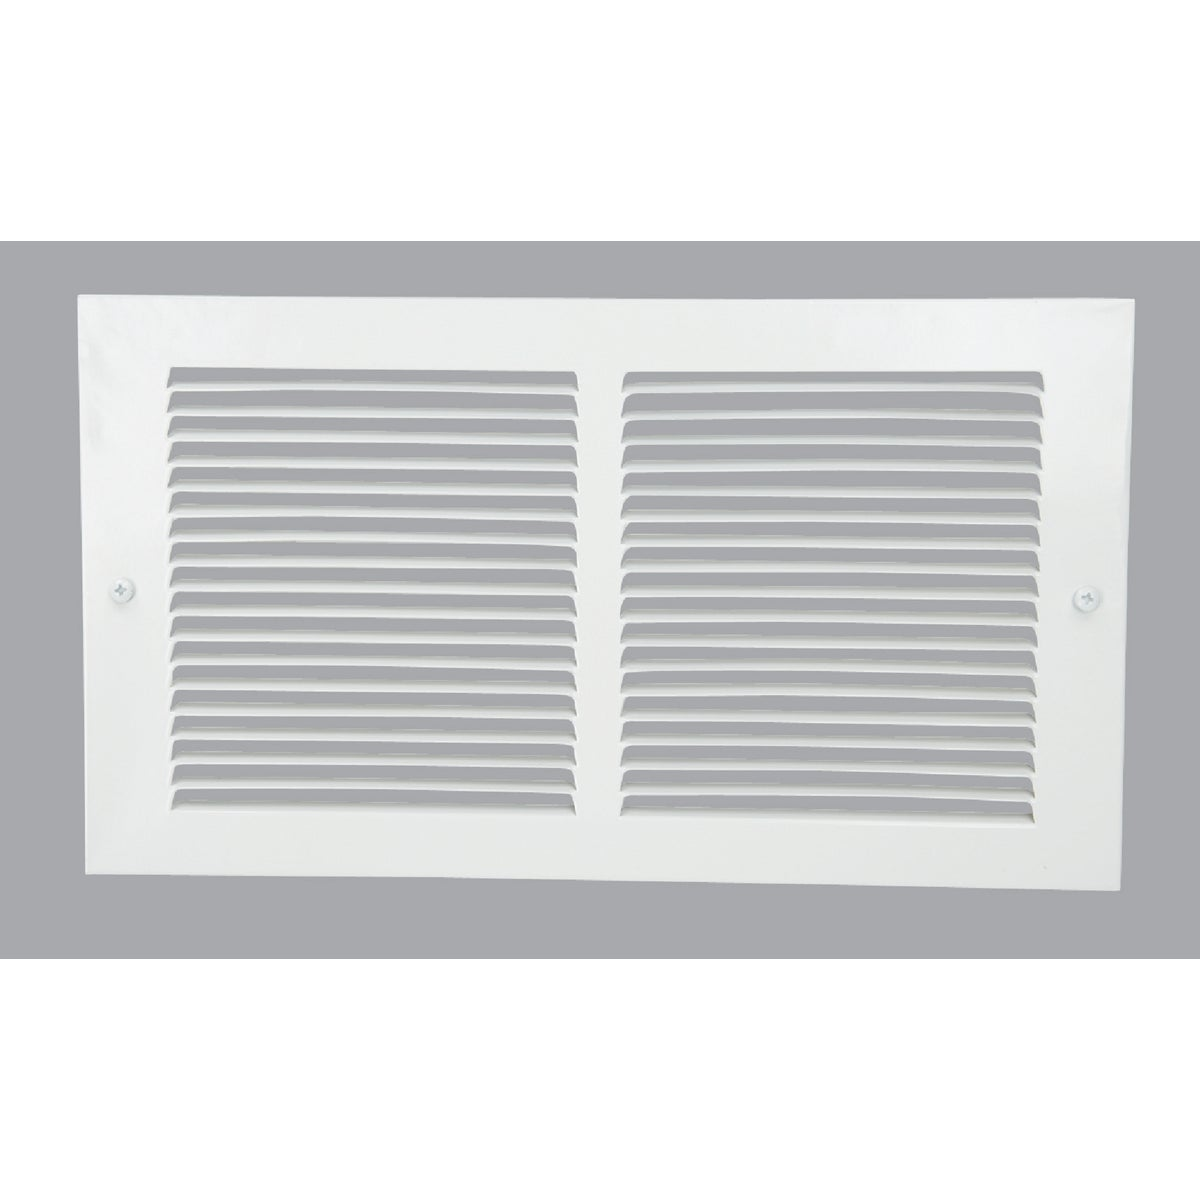 6X12WH RETURN AIR GRILLE